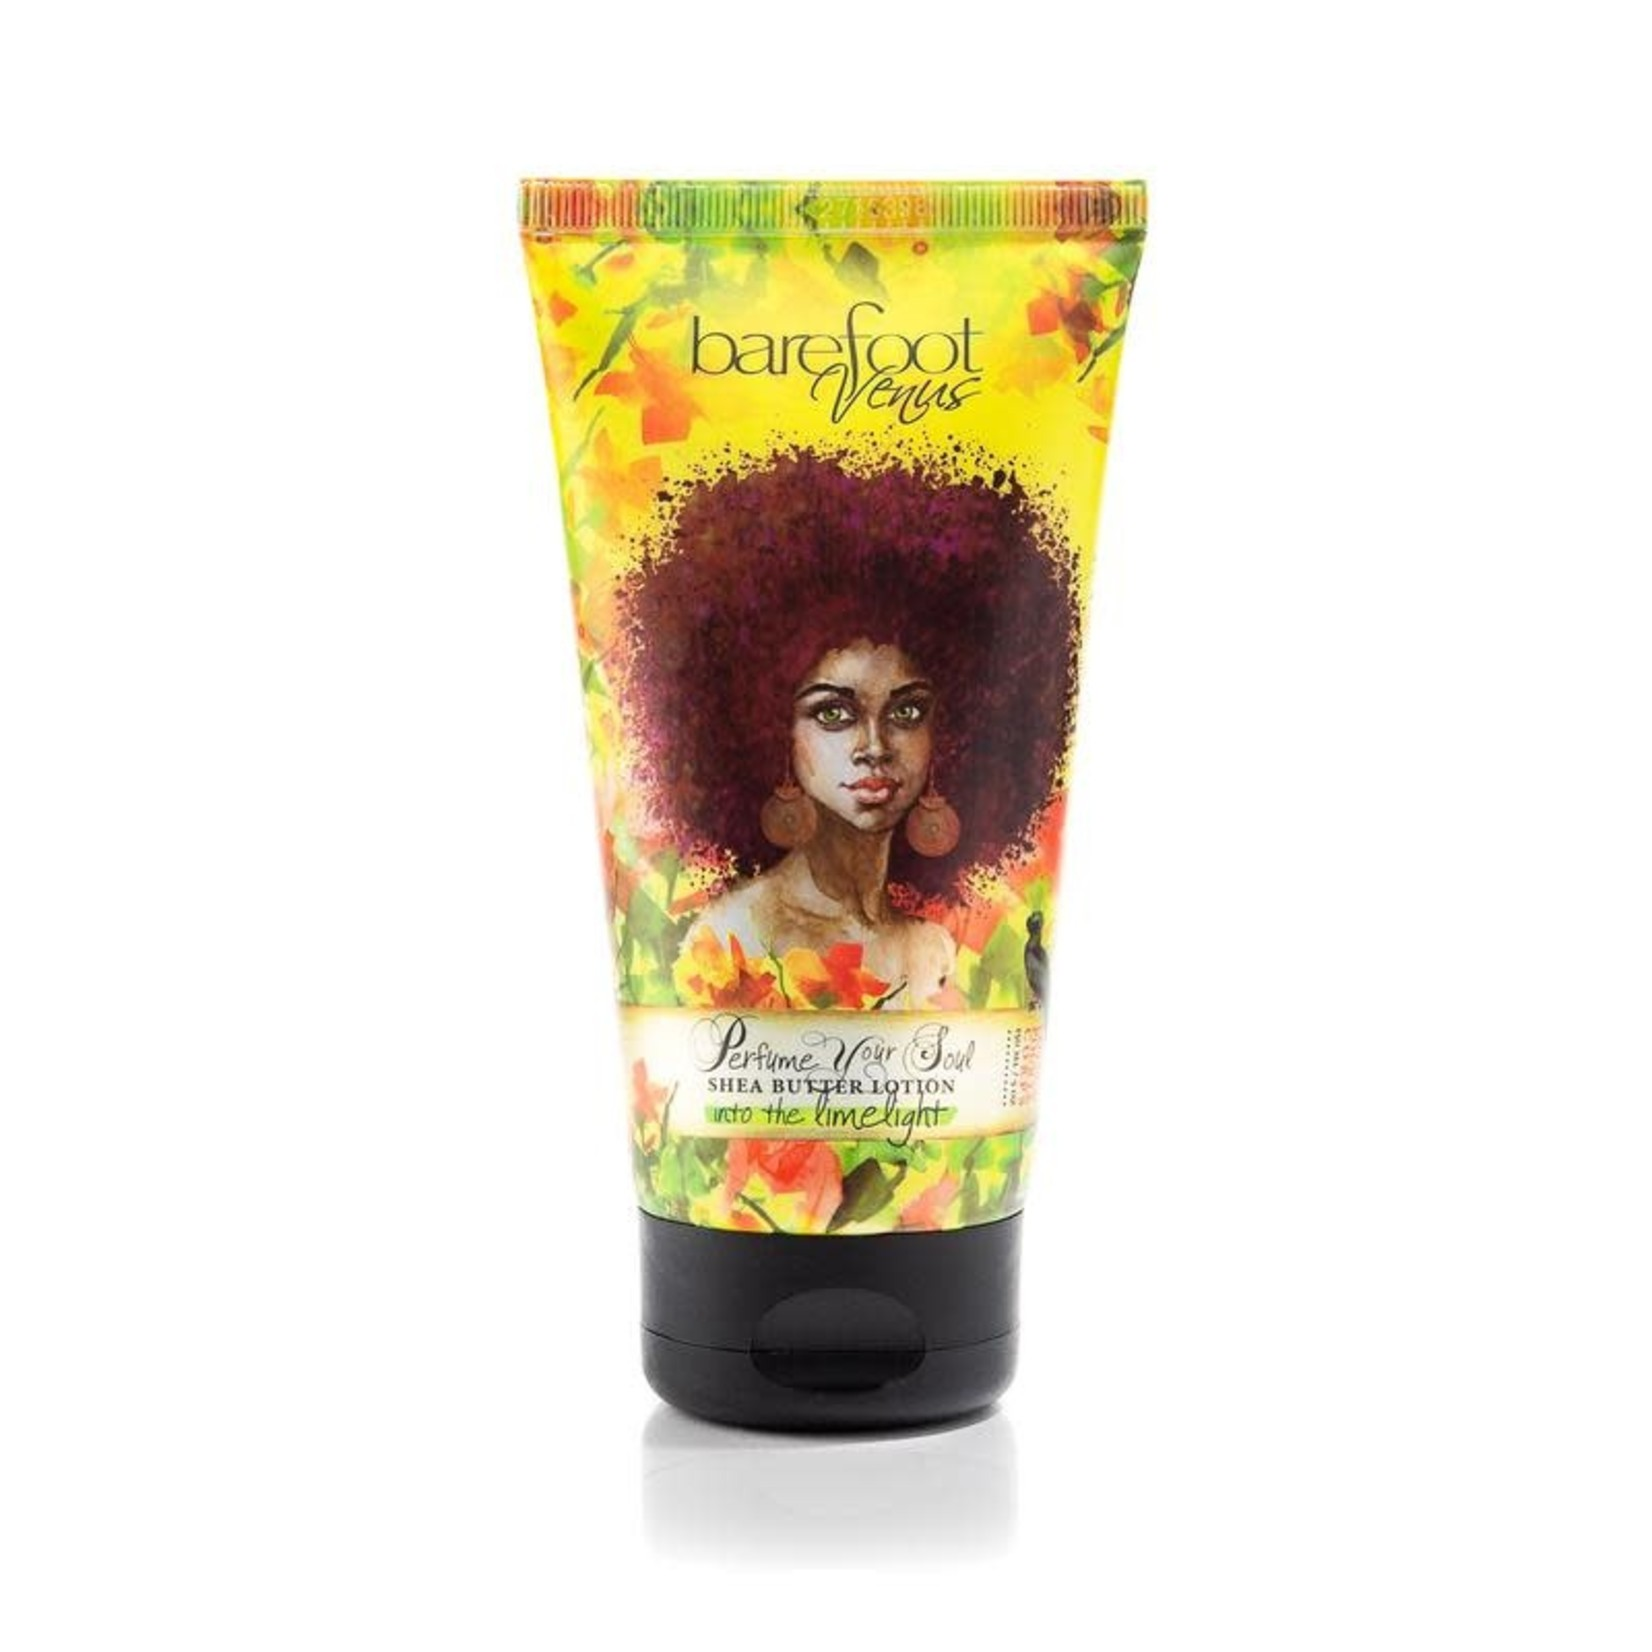 Limelight Shea butter Lotion